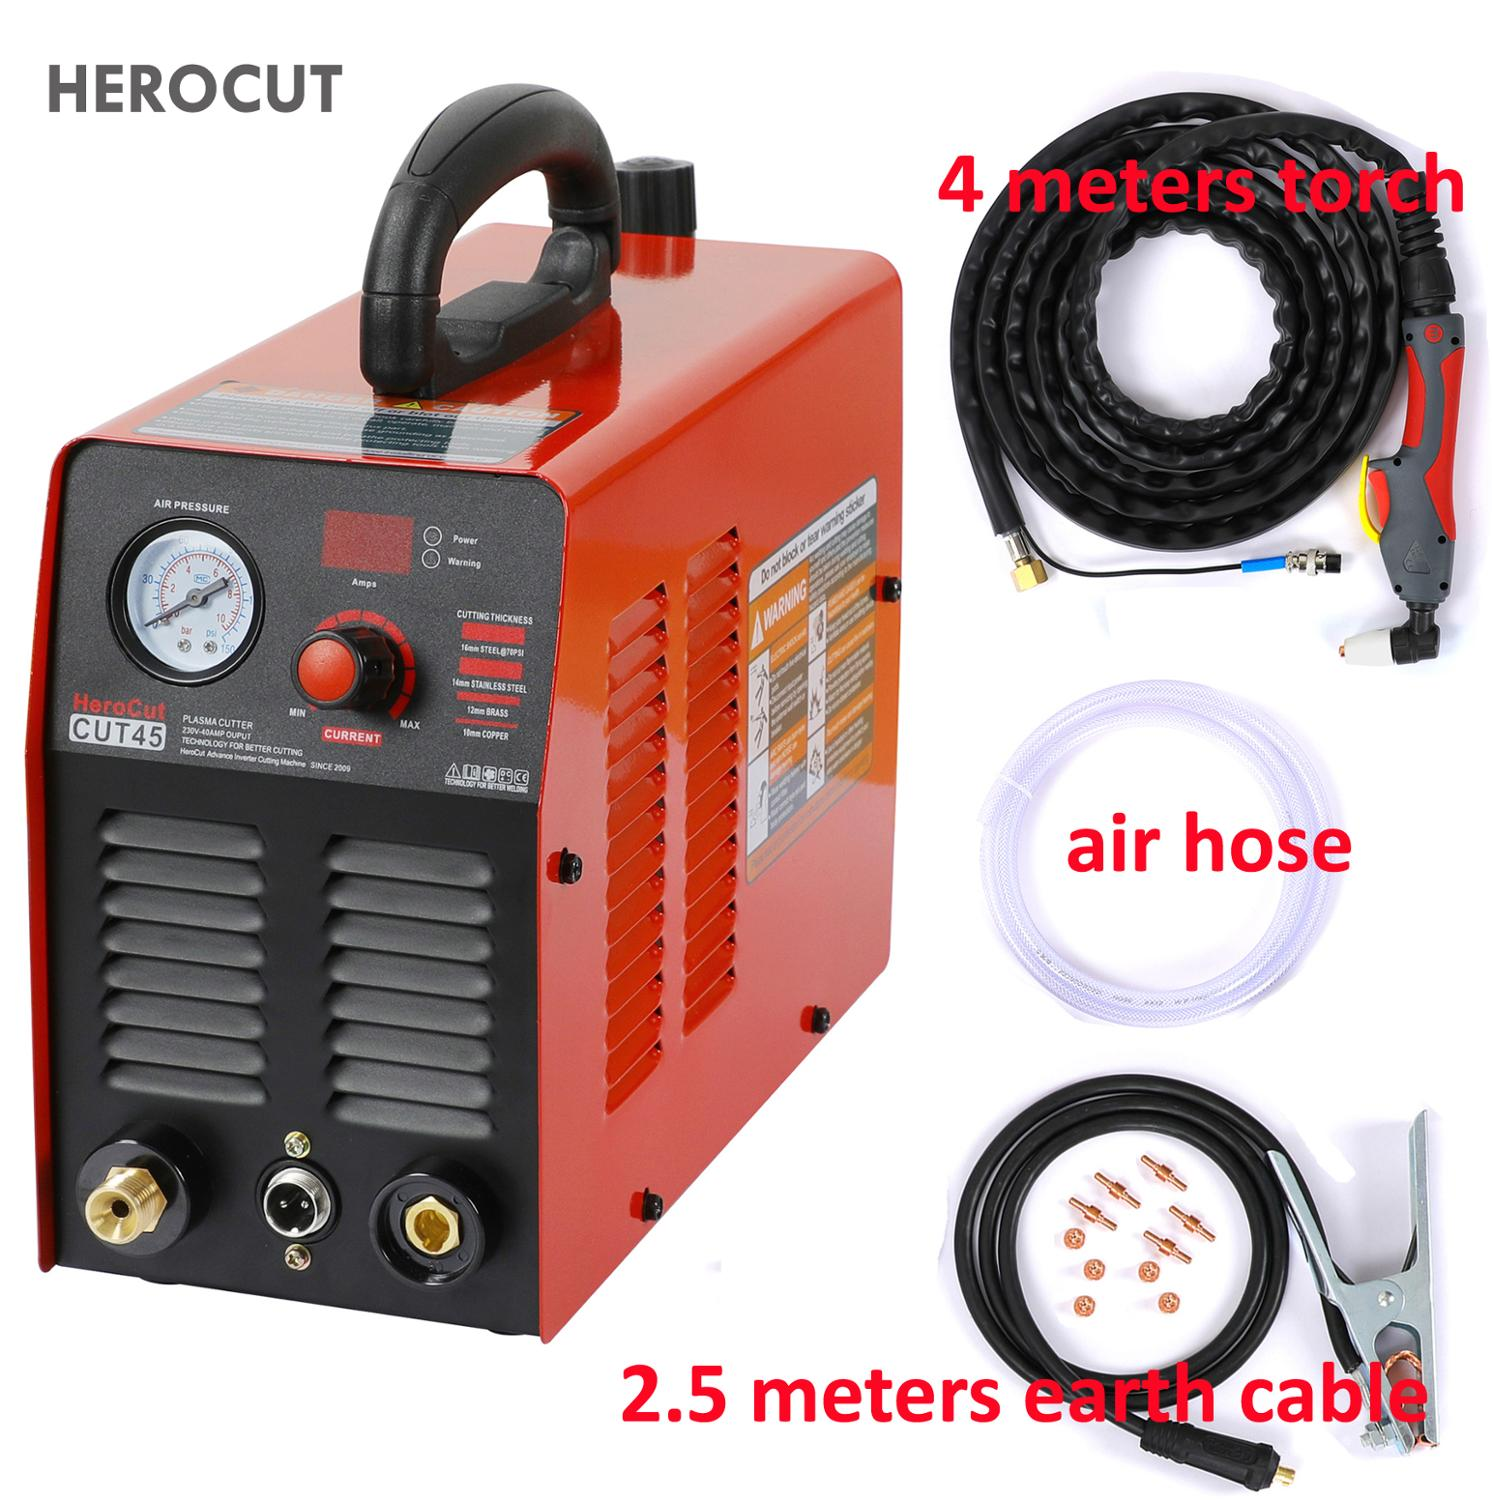 HeroCut 220V Plasma Cutter IGBT Plasma Cutting Machine Cut45 220V 10mm Clean Cut Great To Cut All Steel